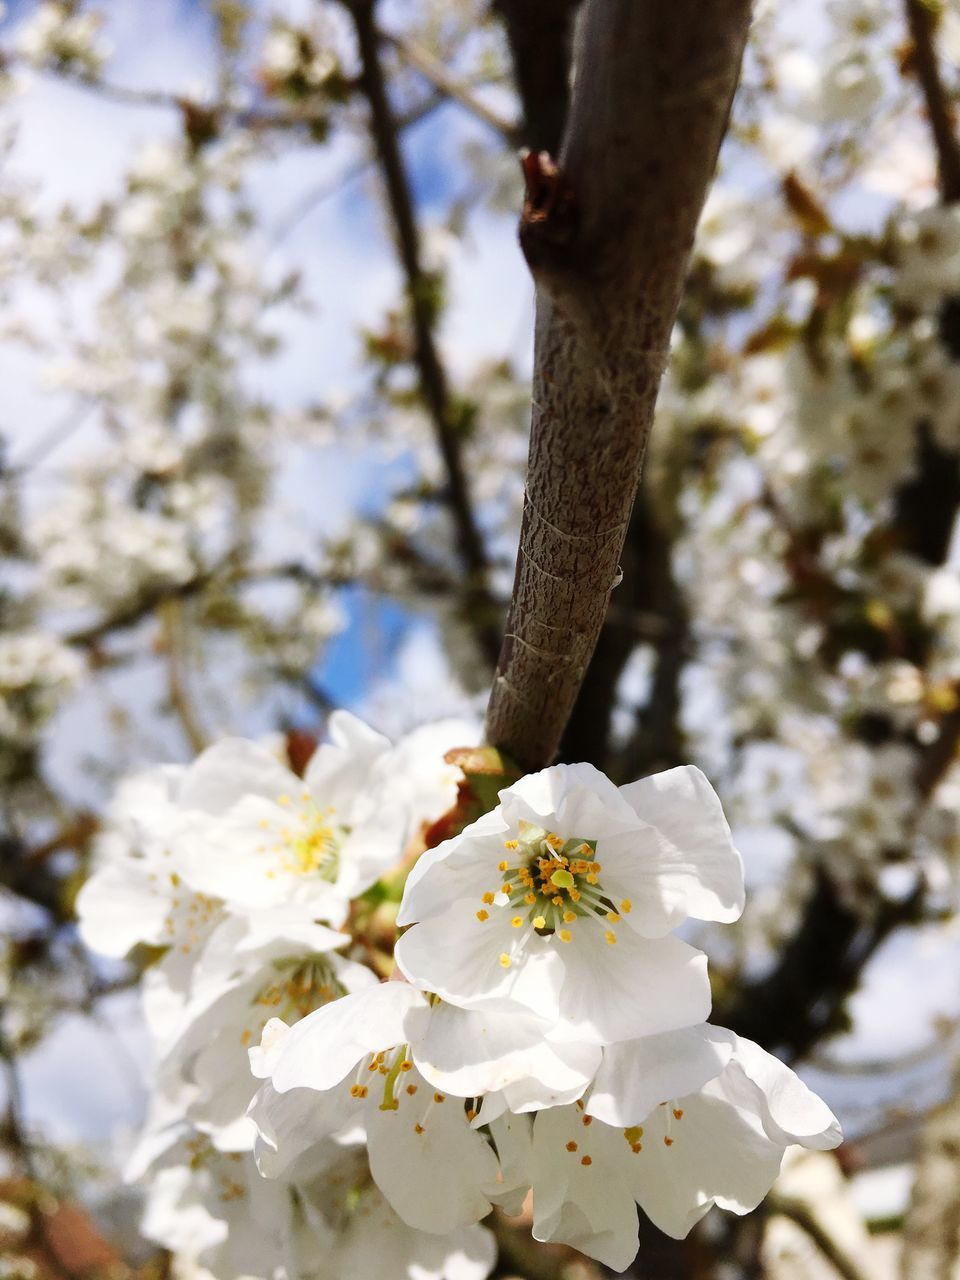 flower, tree, white color, fragility, blossom, growth, nature, apple blossom, beauty in nature, petal, apple tree, branch, springtime, orchard, freshness, botany, day, flower head, stamen, no people, close-up, blooming, outdoors